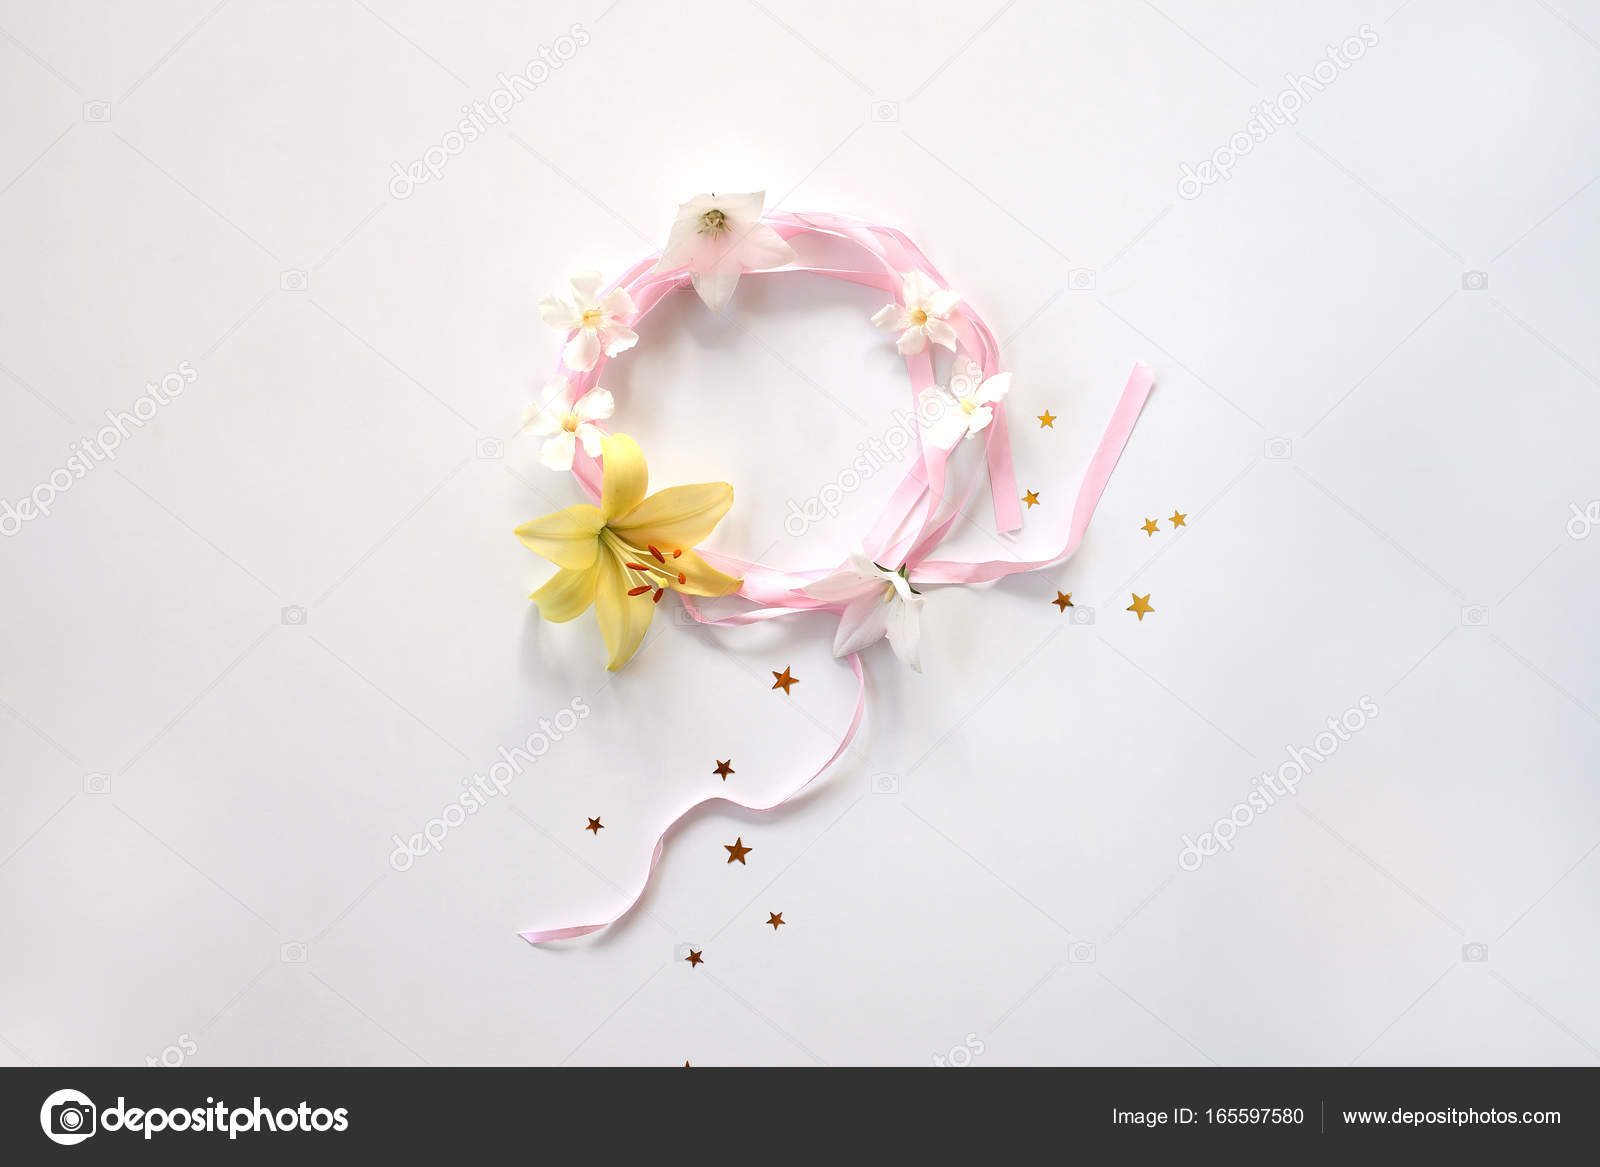 Round Frame Of Pink Ribbon With Flowers And Srars Isolated Stock